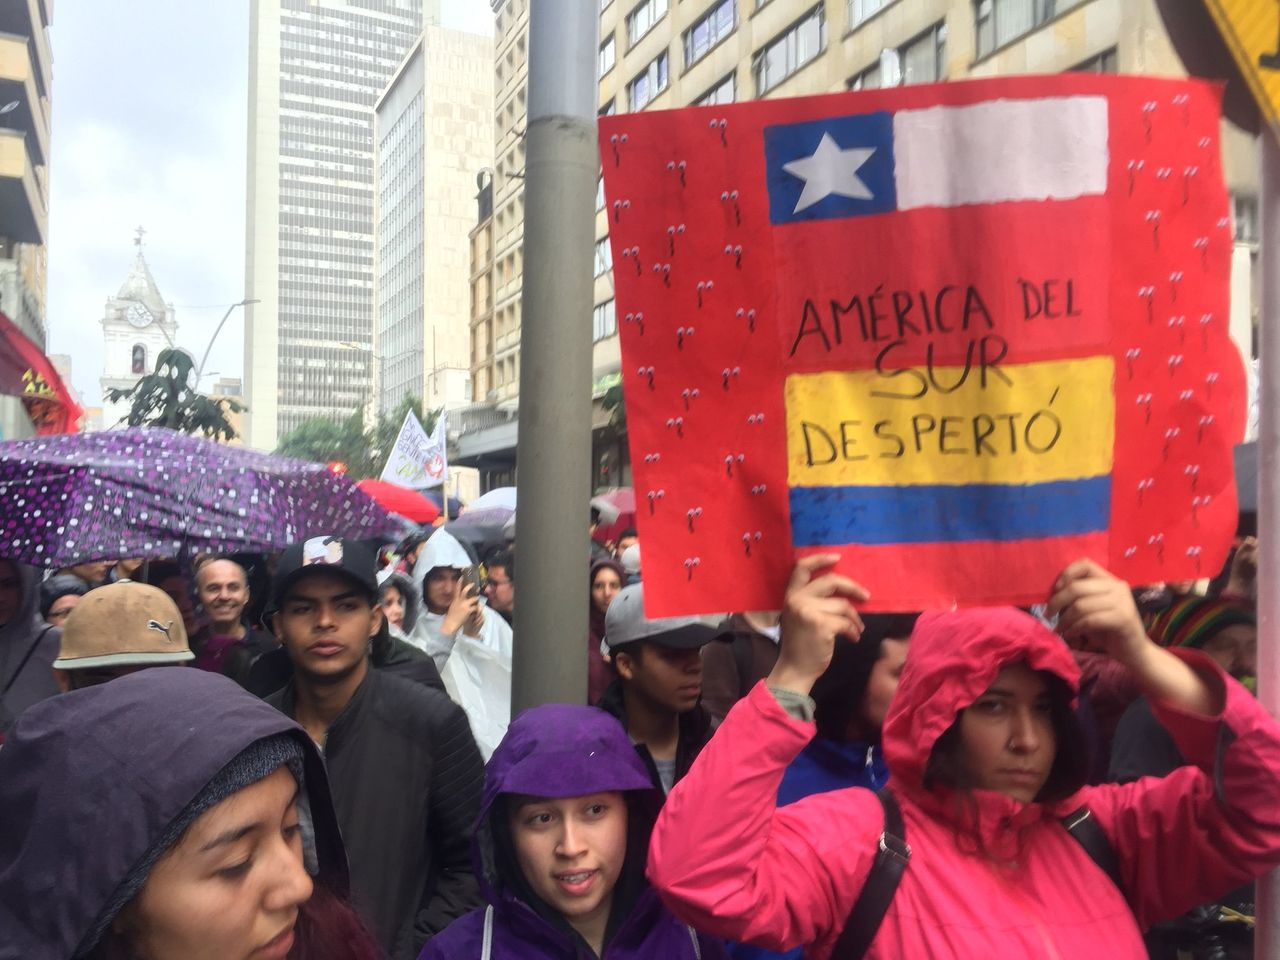 Protester with sign that reads 'South America woke up' with Chilean and Ecuadorian flags (credit: Dylan Baddour via Twitter)